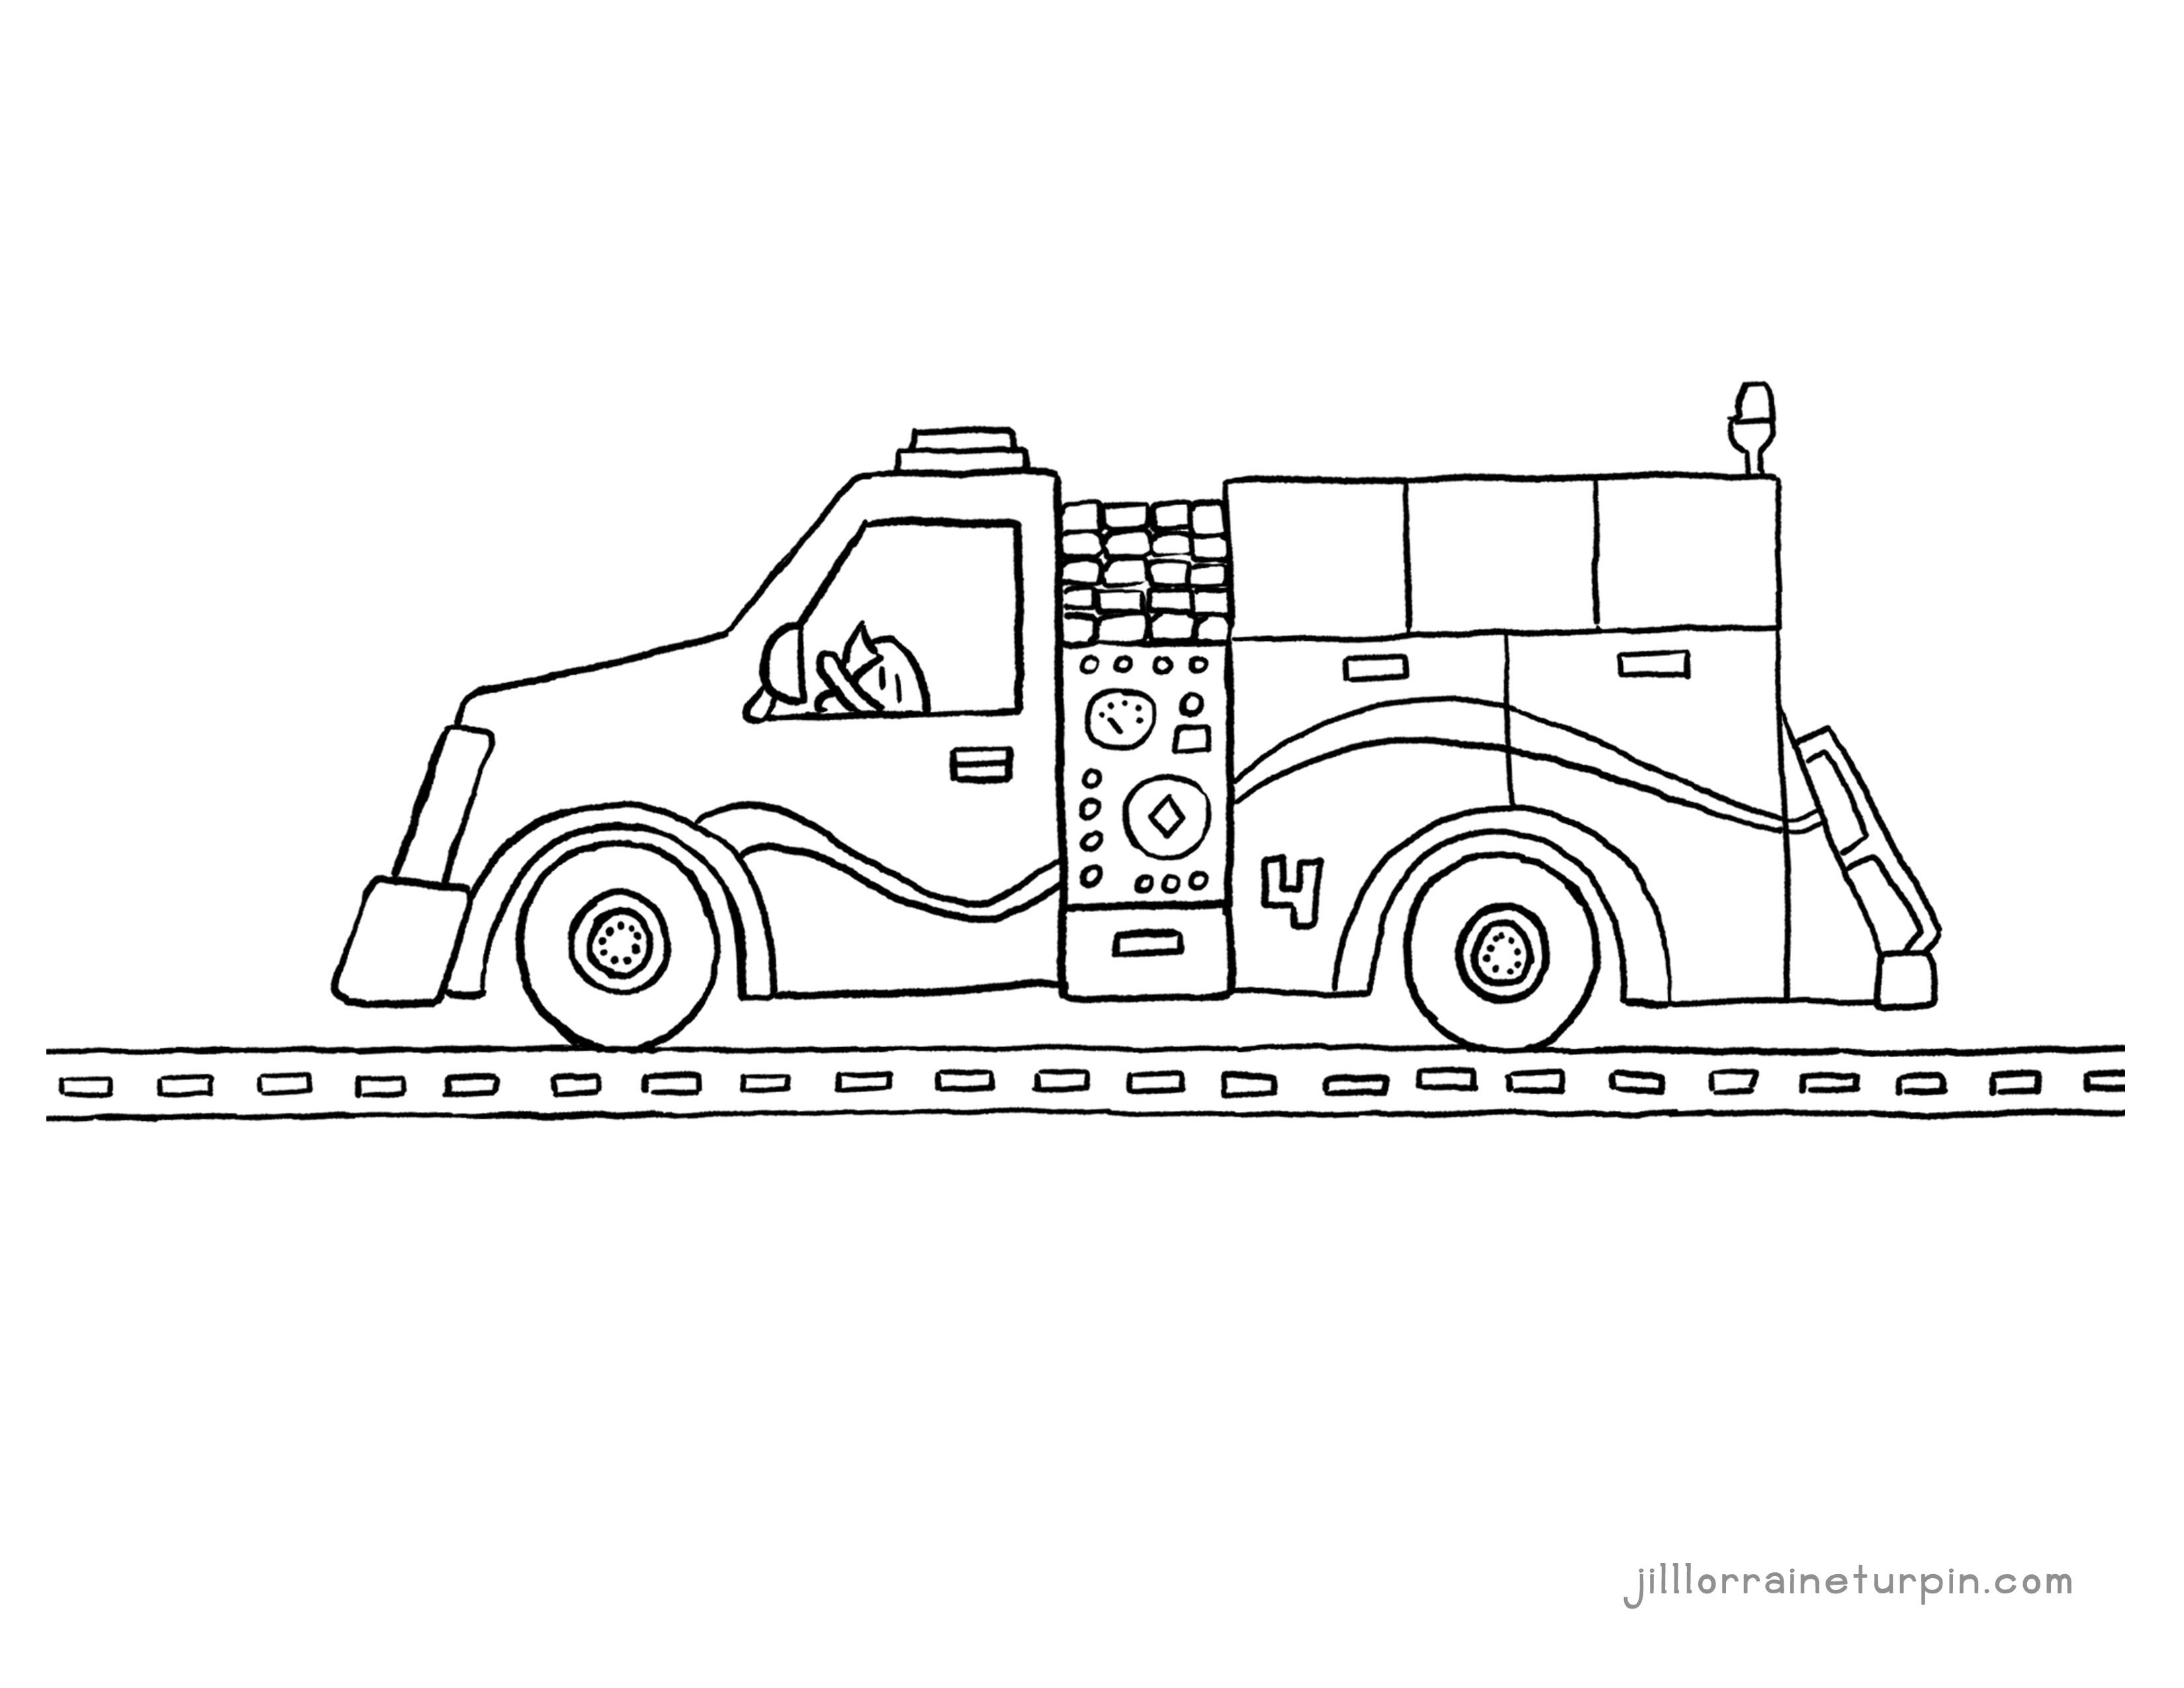 Free Printable Fire Truck Coloring Pages My Very Own Fire Truck